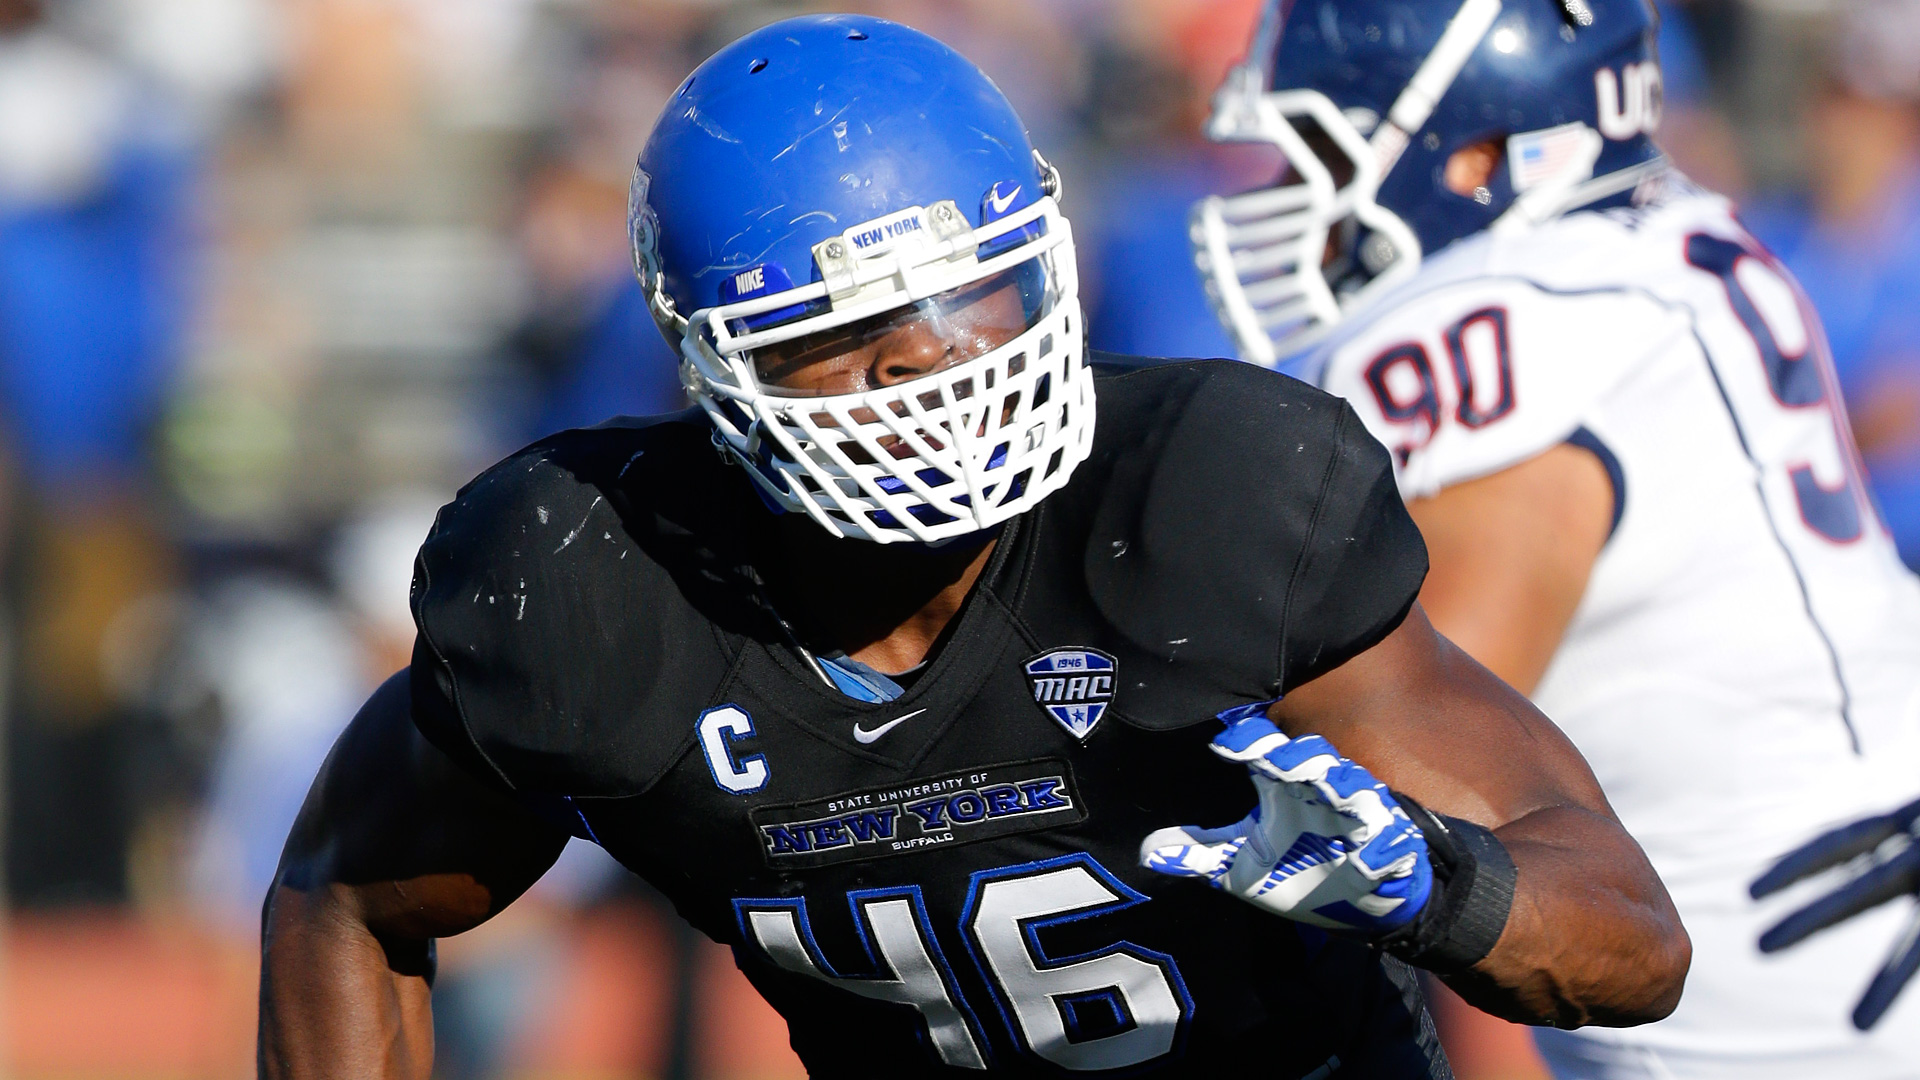 2014 NFL Draft -- Raiders select Khalil Mack with No. 5 pick